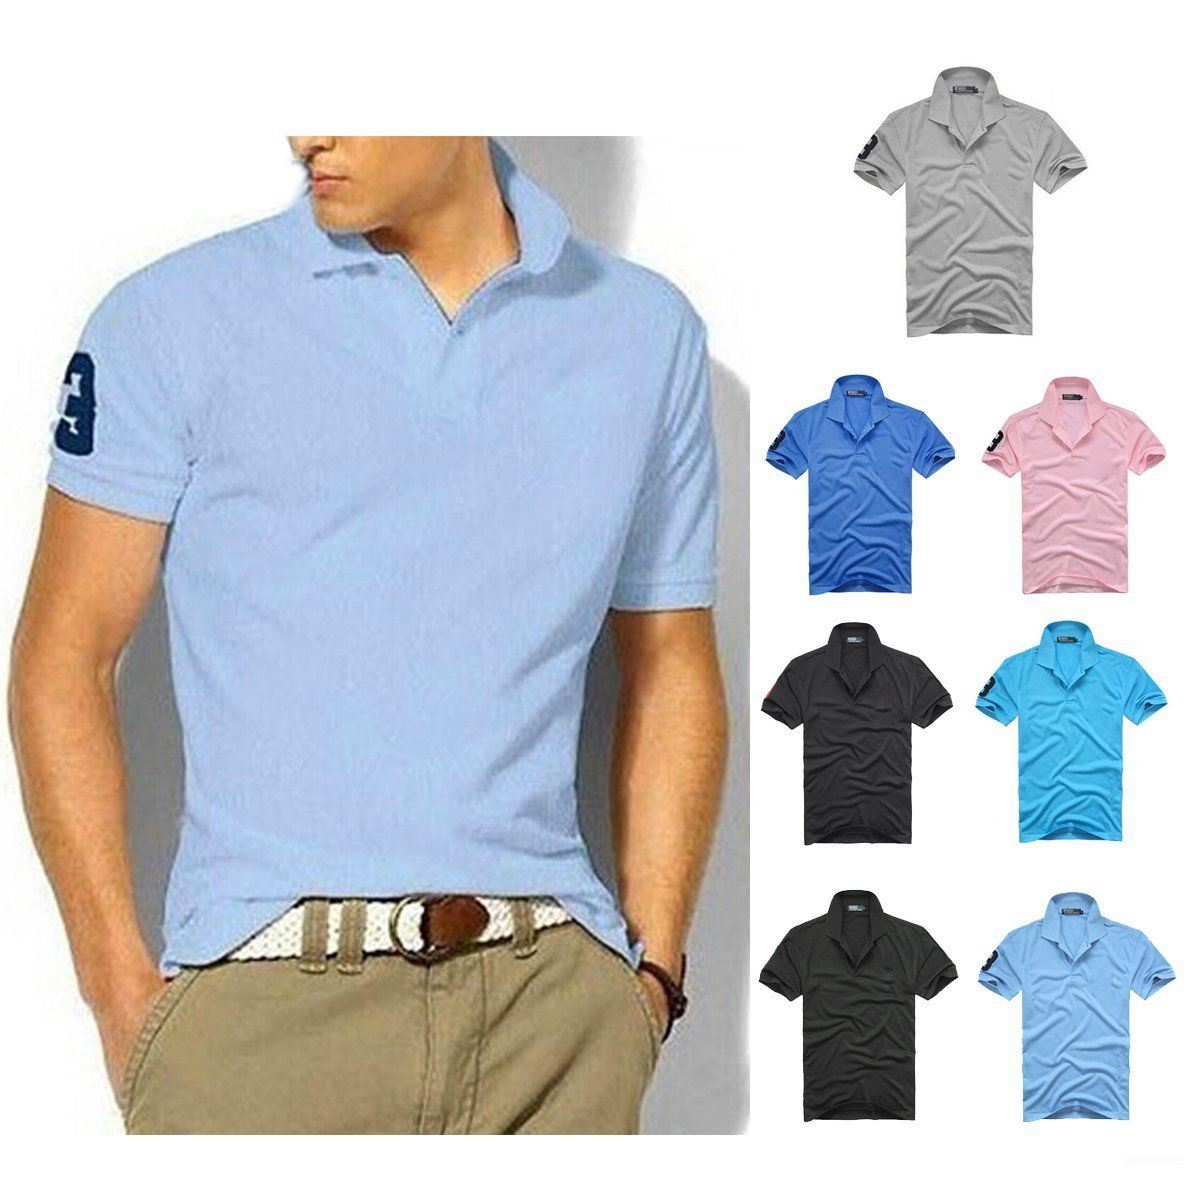 Wholesale Custom Unique Polo Shirts China with Style Clothing